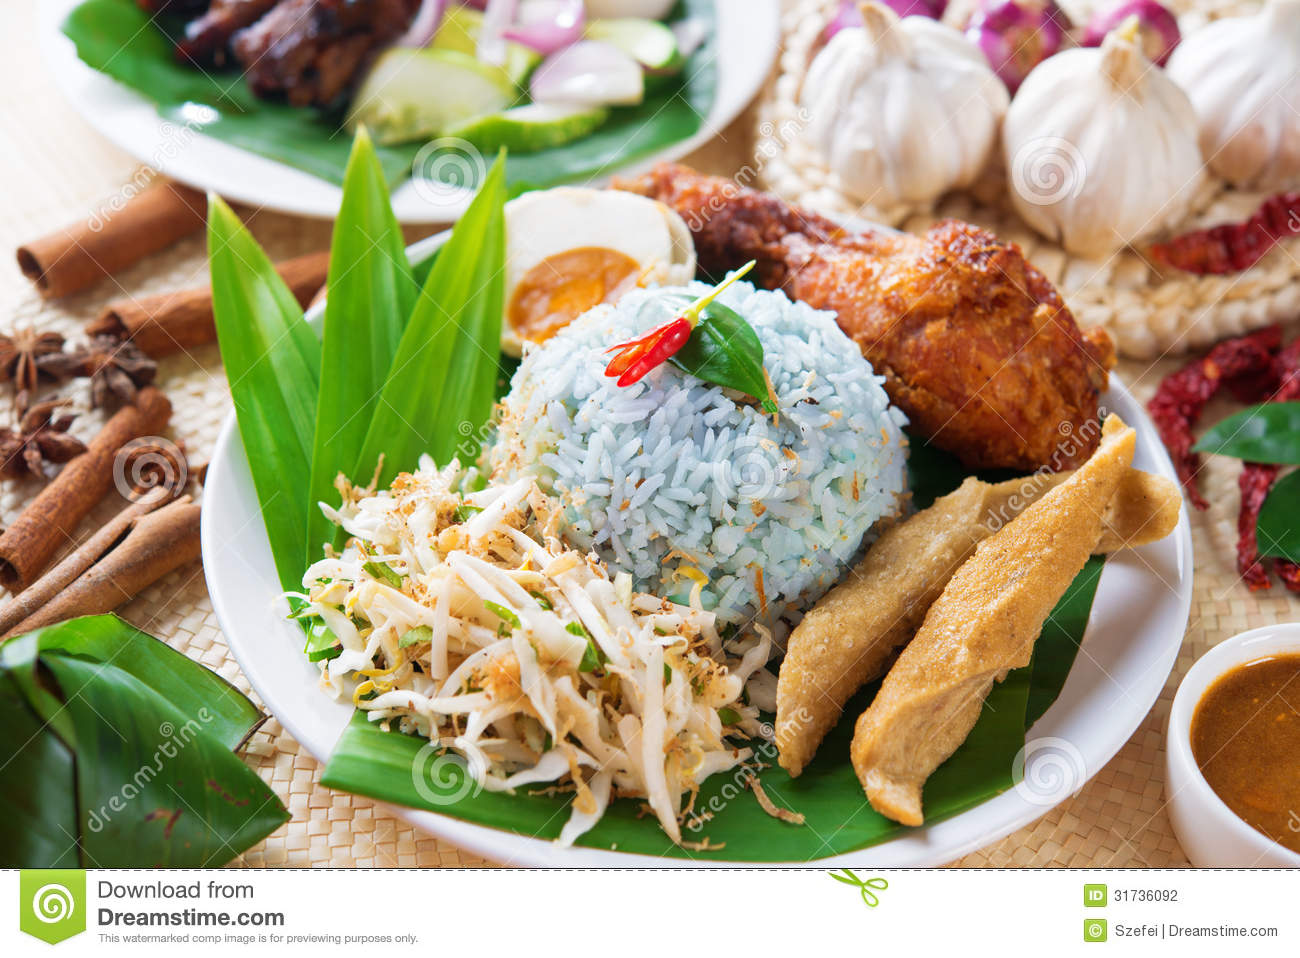 essay about malay food Descriptive essay on malaysia his business partner, for 15 years we went to a restaurant for lunch the food was different but rich in taste.